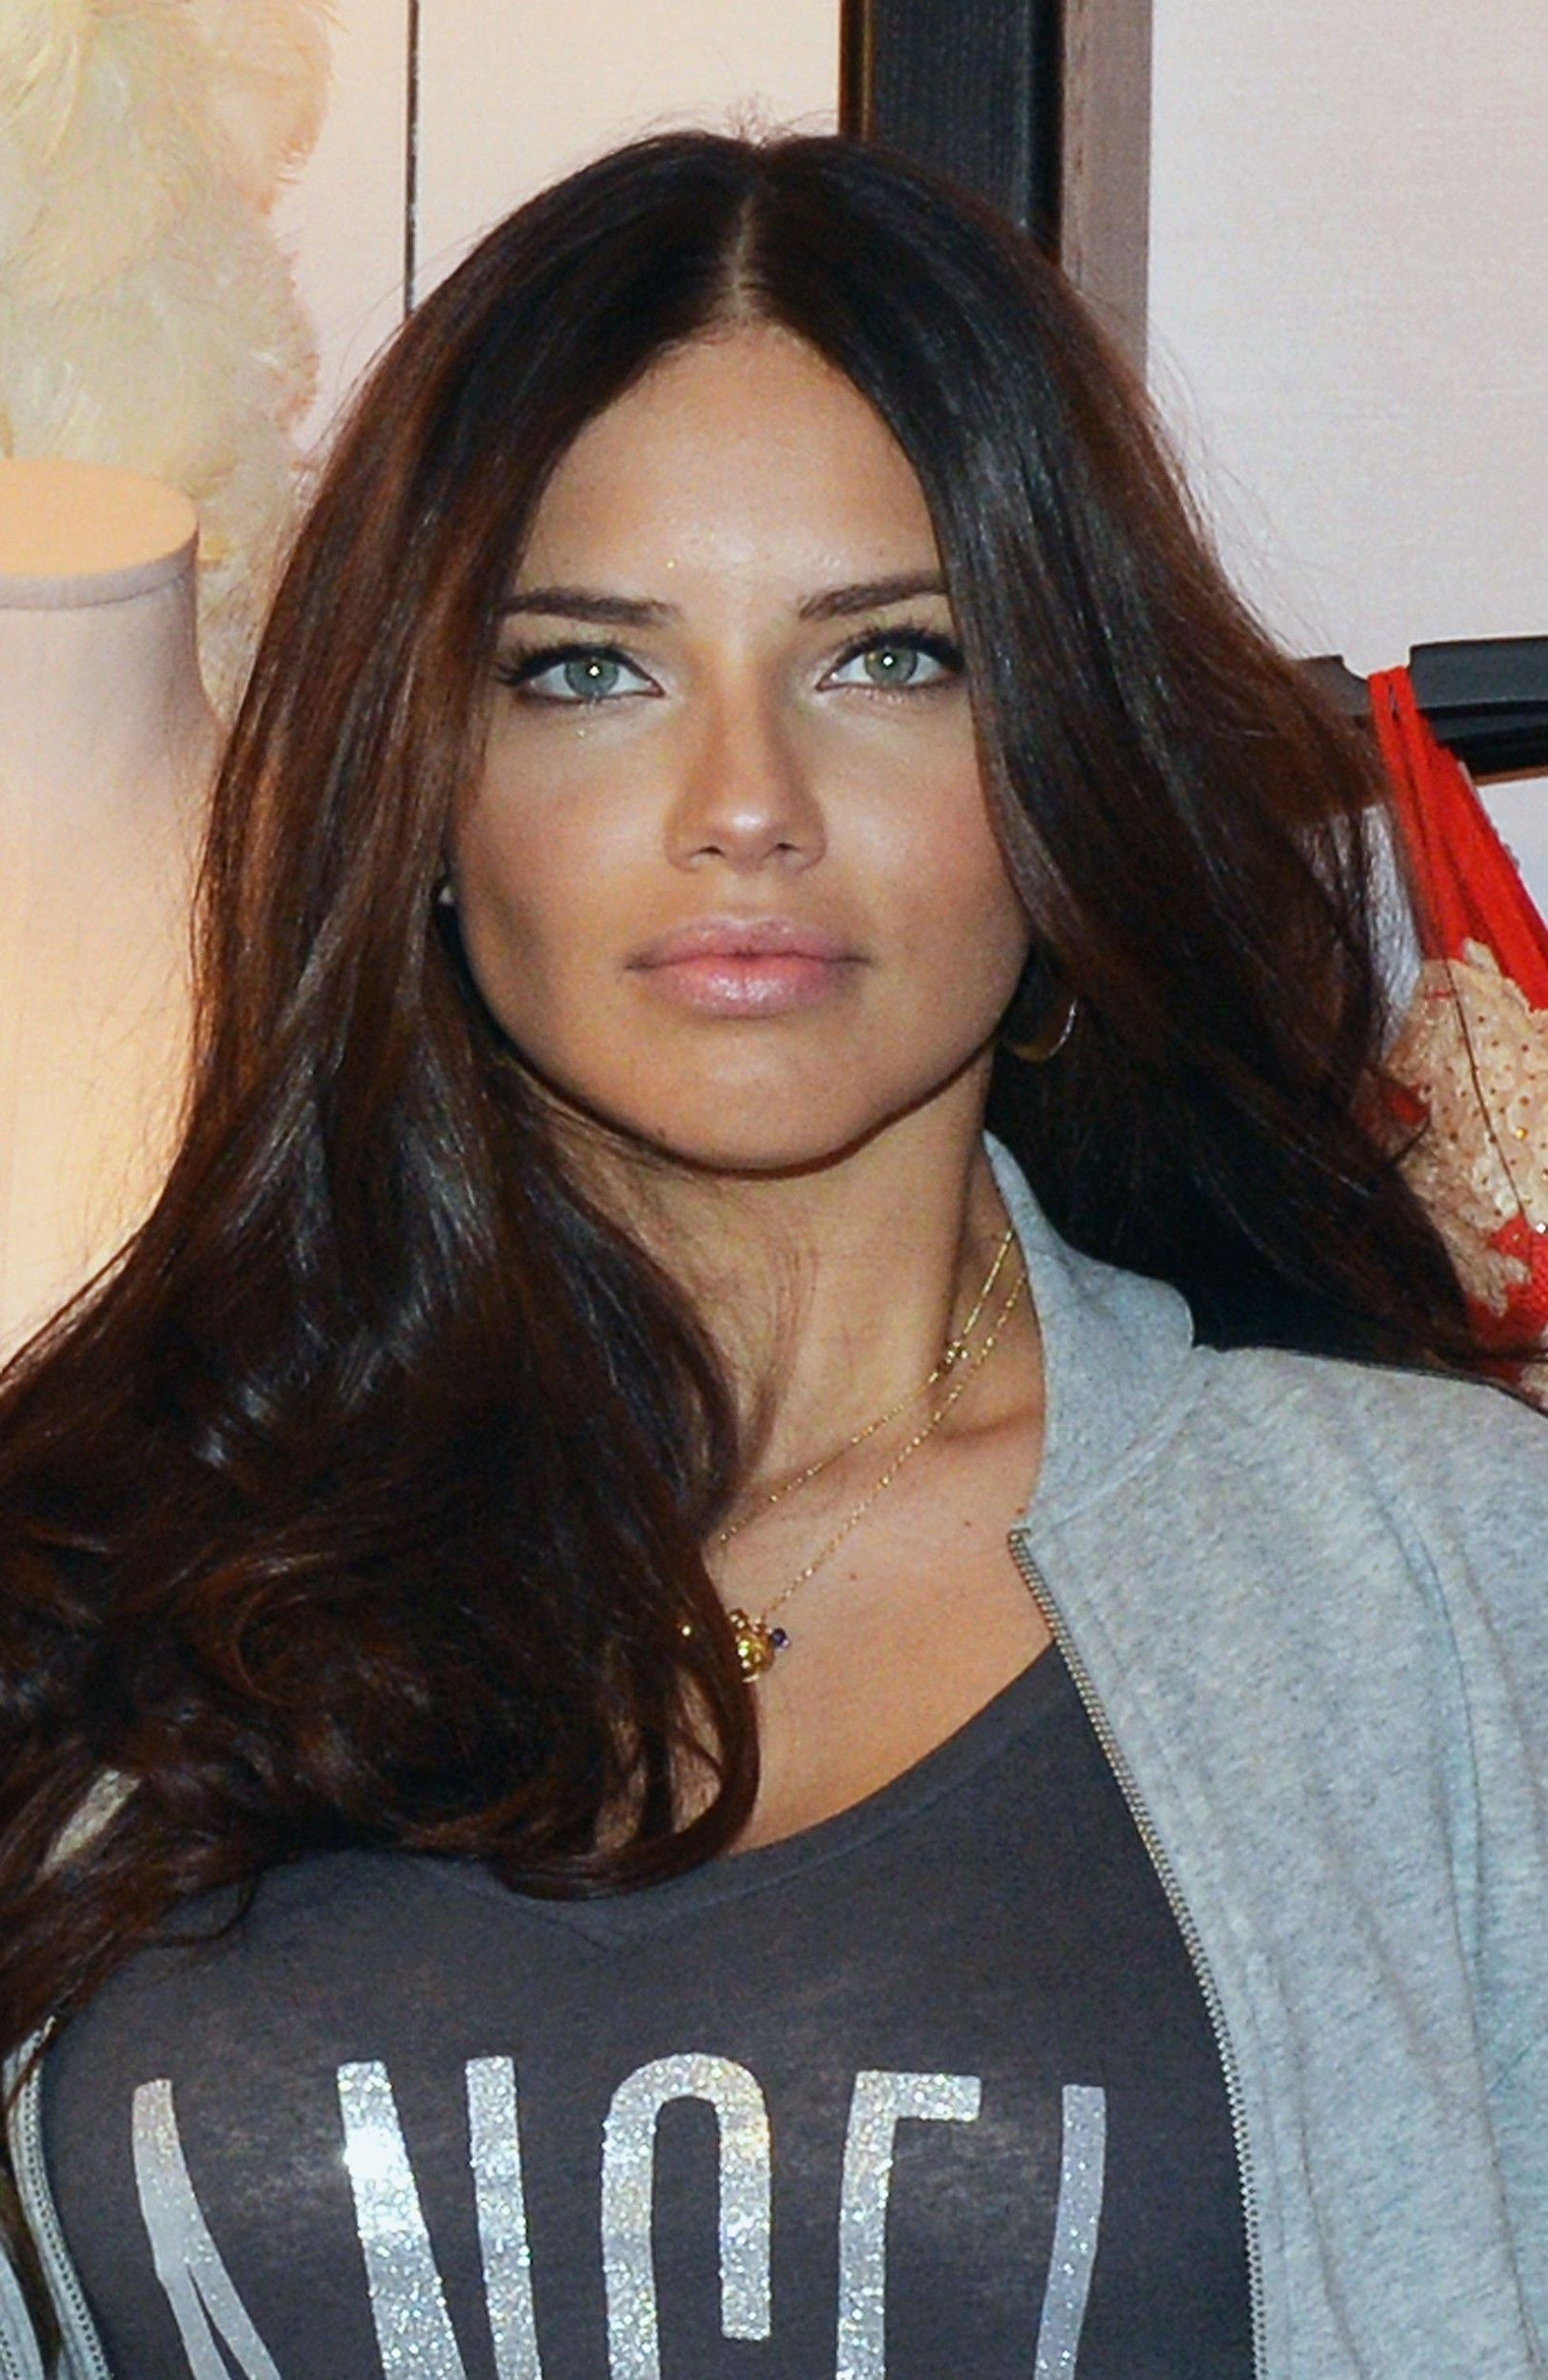 Victorias Secret Angels Celebrate Holiday 2012 In NY